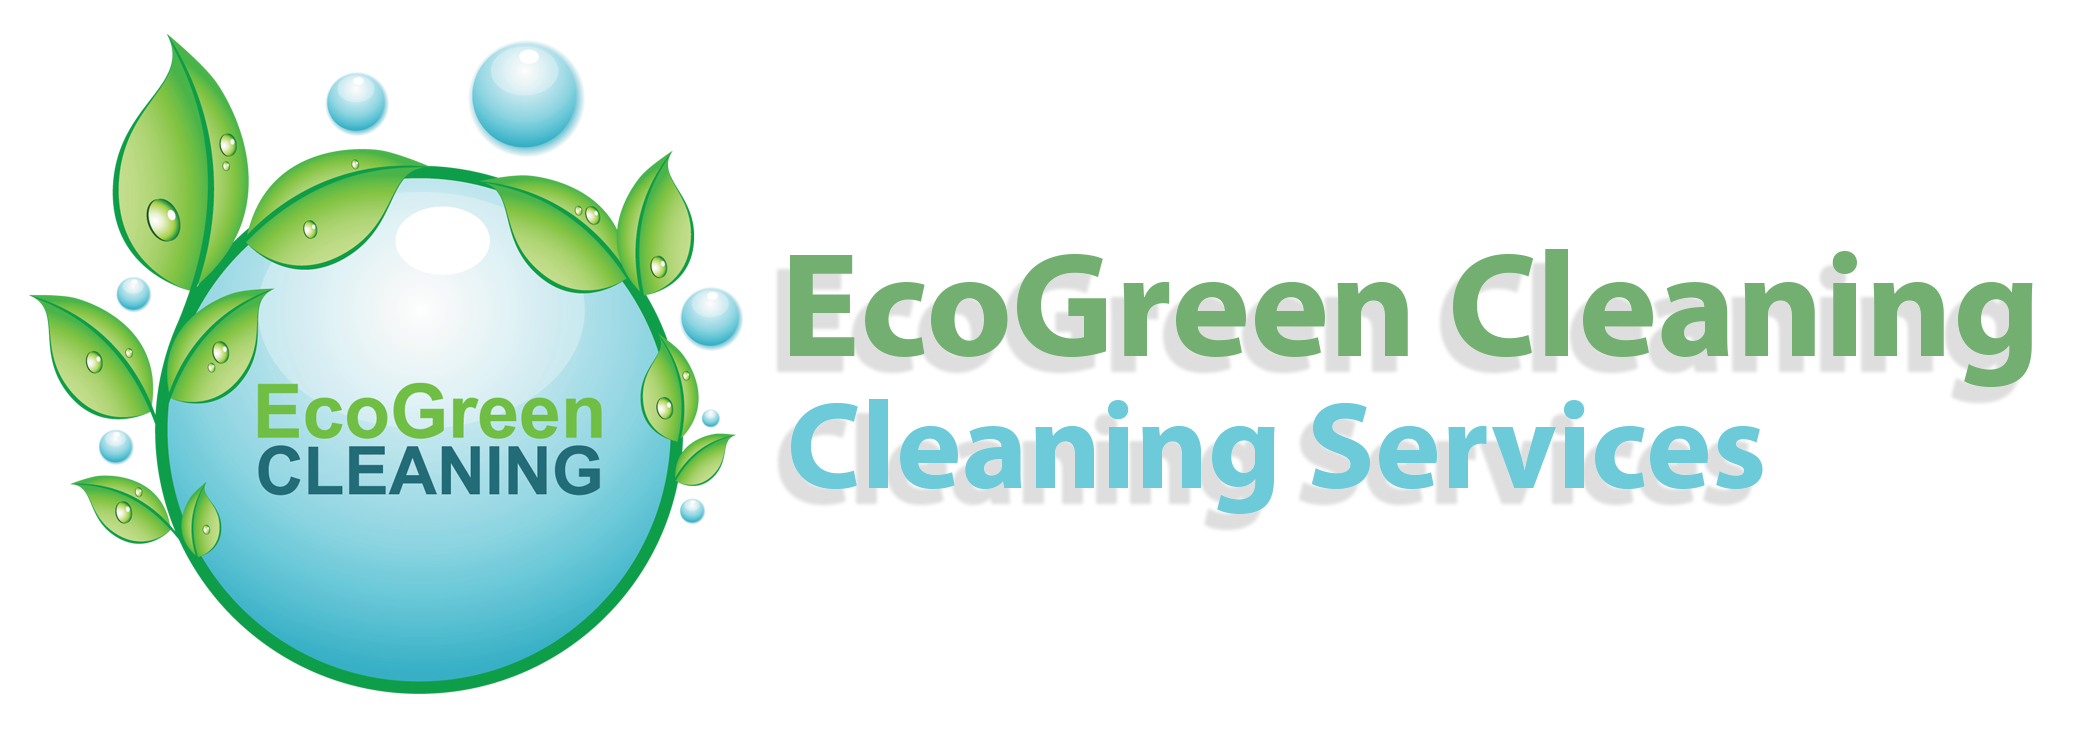 EcoGreen Cleaning